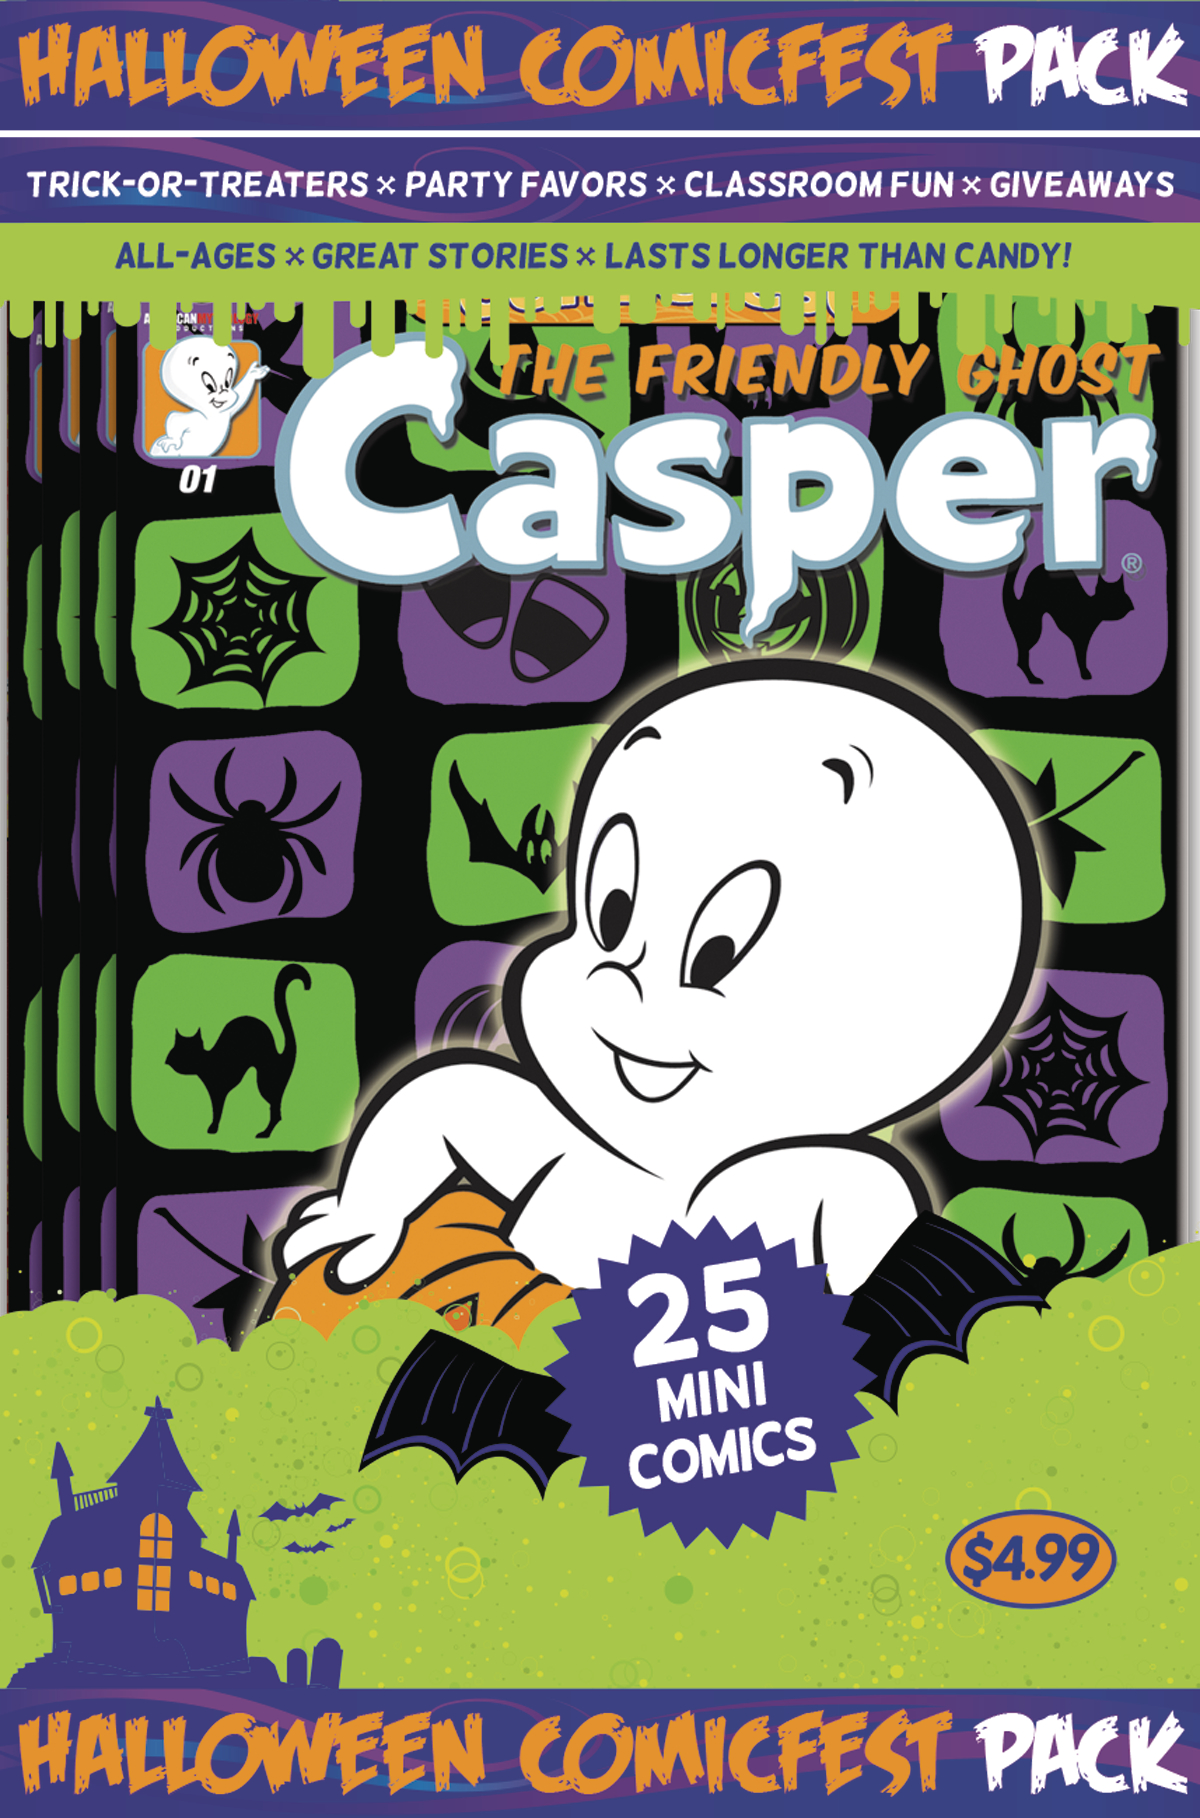 HCF 2017 CASPER THE FRIENDLY GHOST MINI COMIC POLYPACK